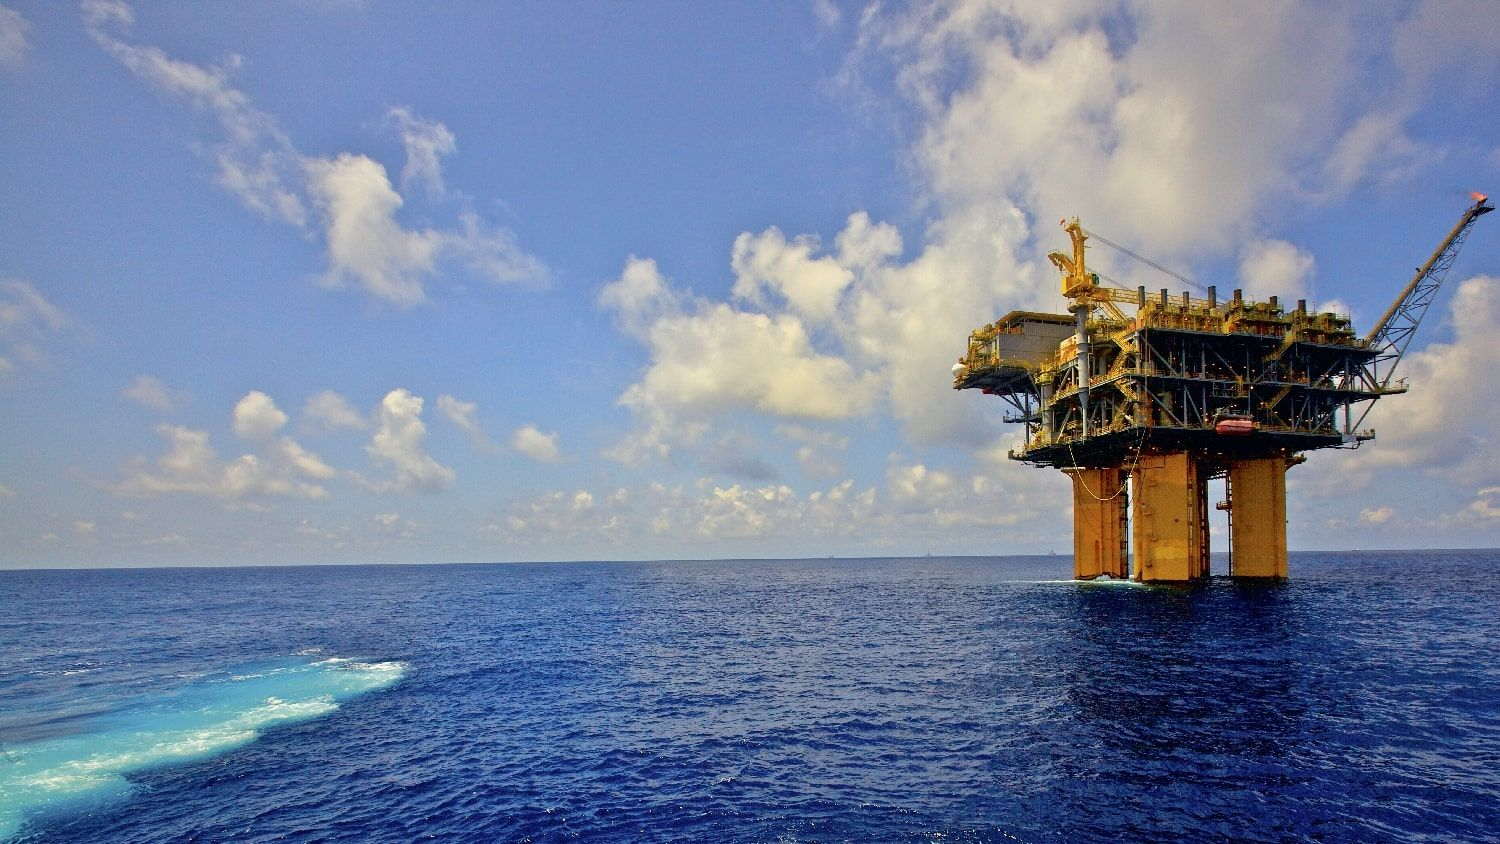 The extraction of oil and gas from Mexico grew 4.2% in the first quarter of 2020, at an annual rate, the Inegi reported.